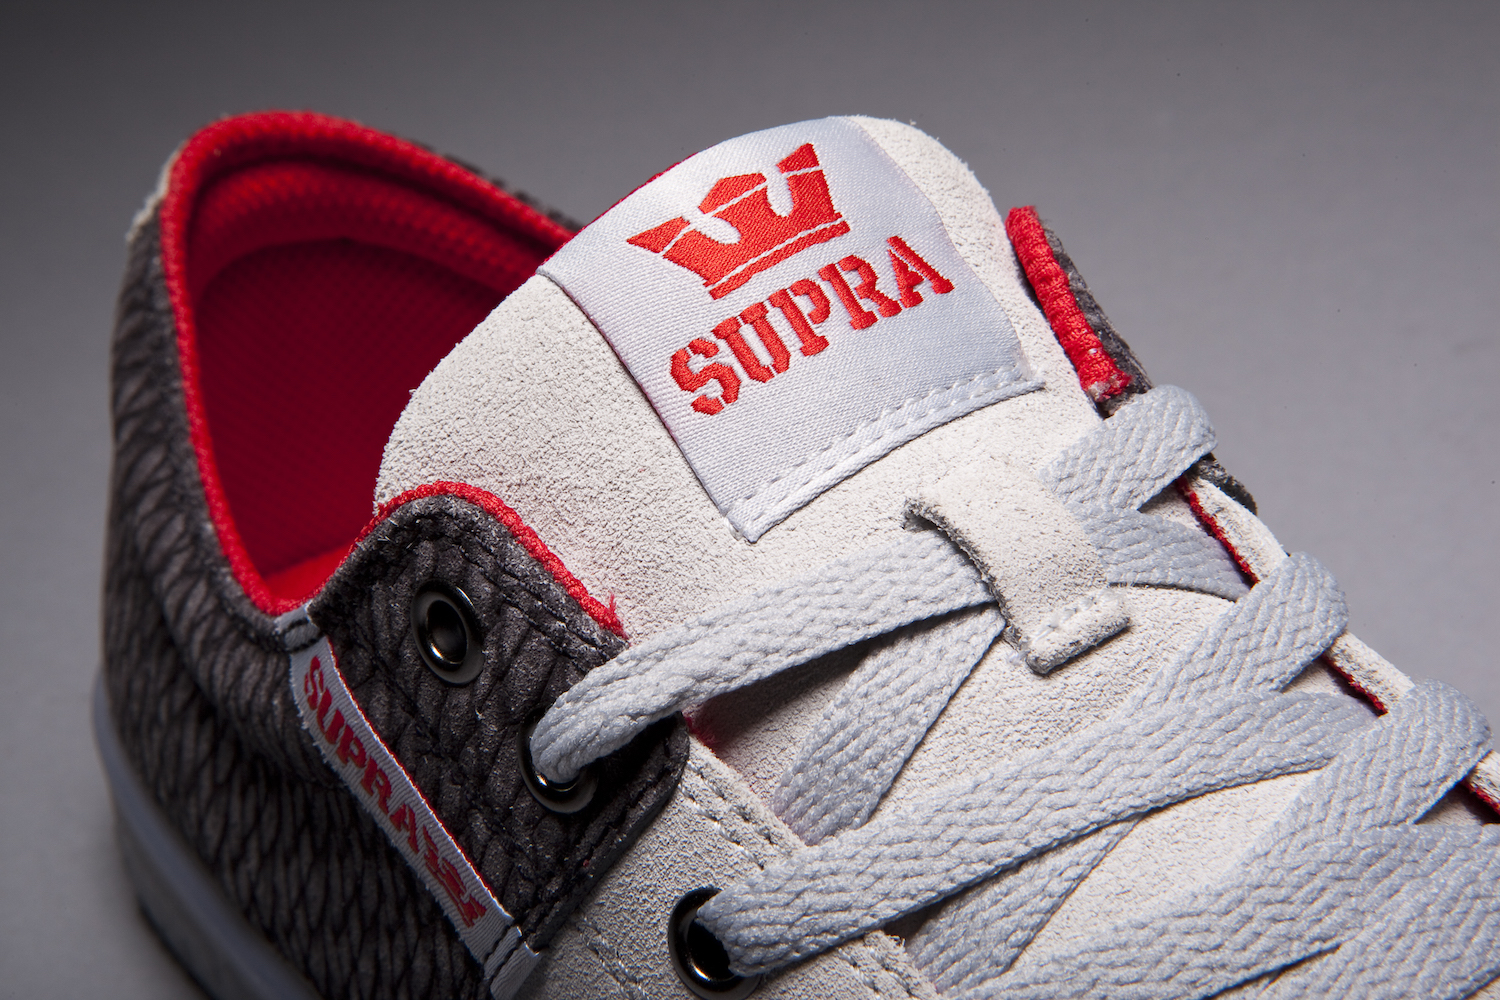 supra and assassins creed footwear collection 8